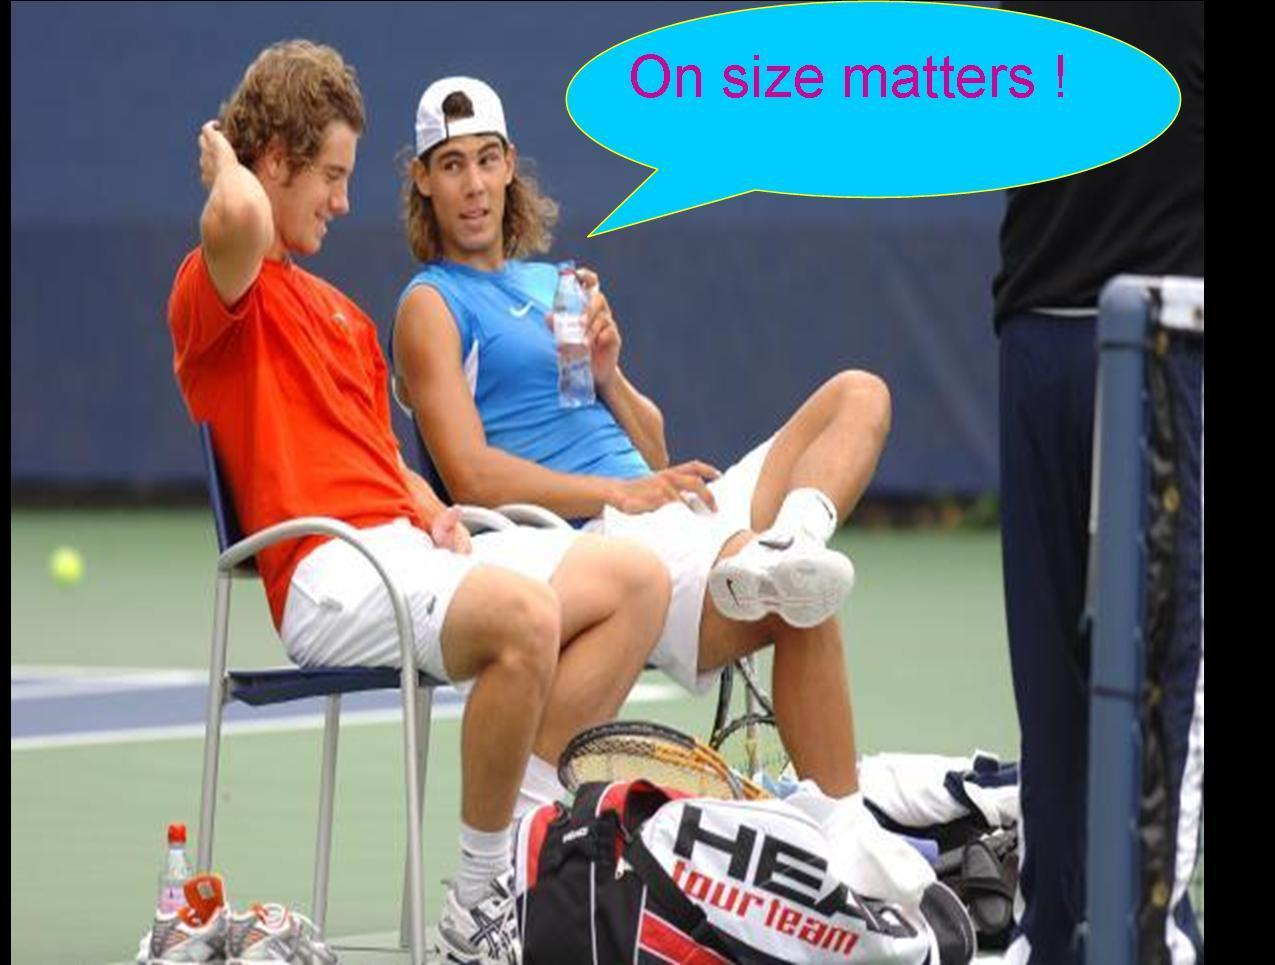 On size matters !!!!!!!!